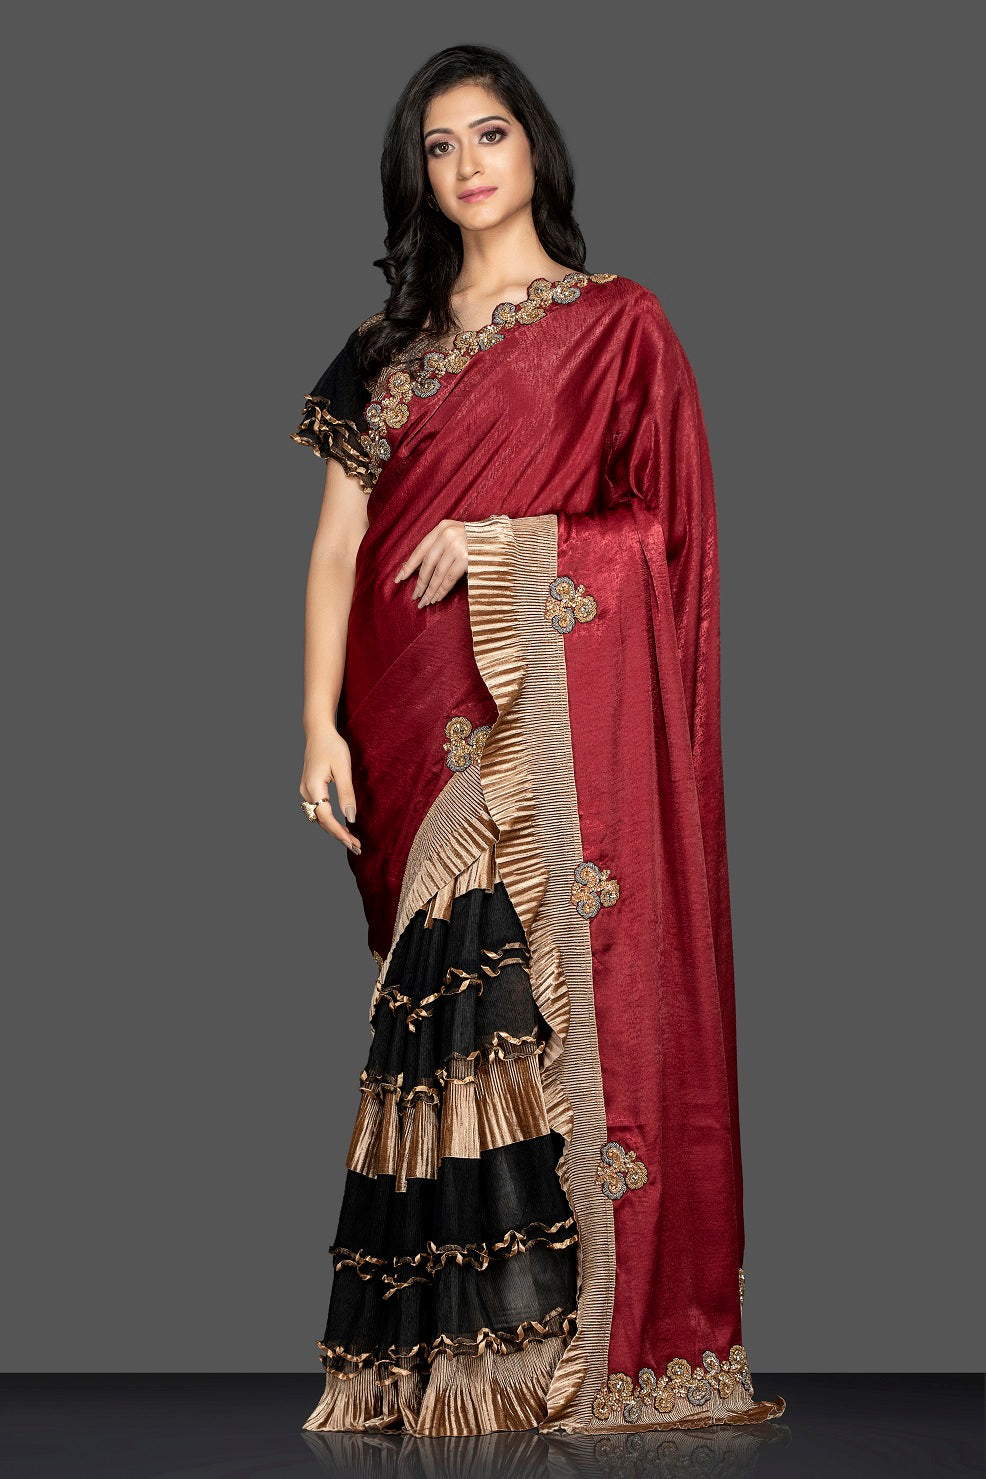 Buy maroon and black designer saree in USA with golden ruffles and designer saree blouse. Elevate your sartorial choice with exclusive Indian designer sarees with blouse, embroidered sarees, party sarees from Pure Elegance Indian fashion store in USA.-side